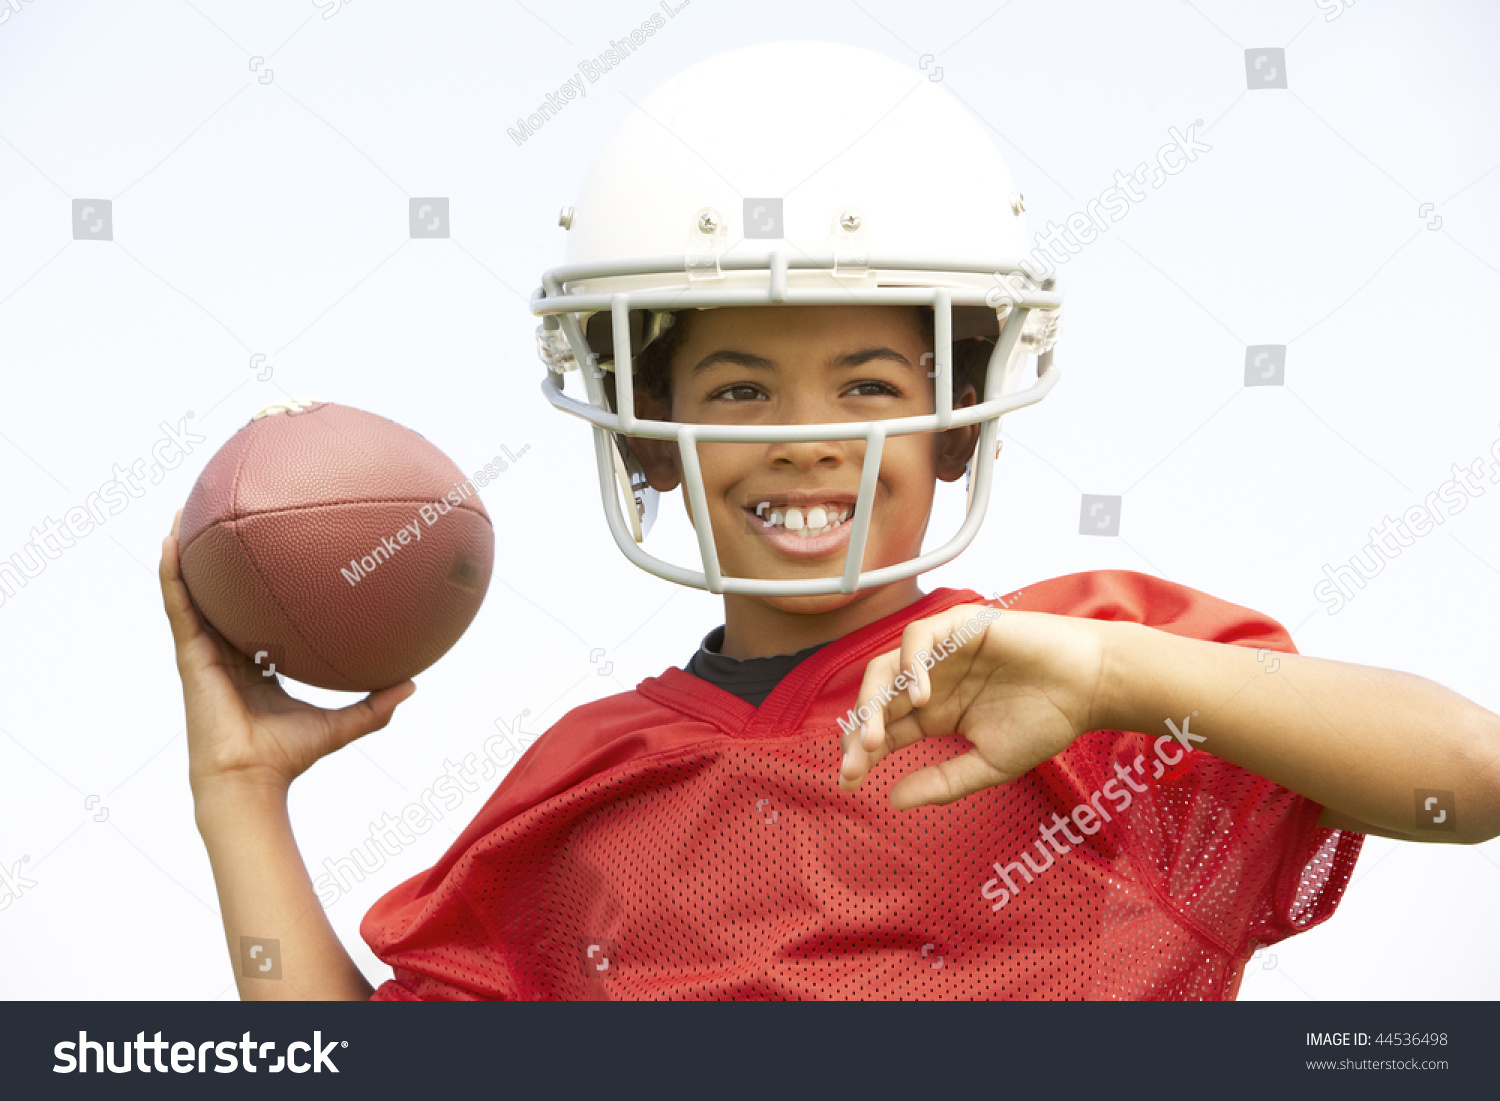 BBC Sport - American football: The boy with no legs ...